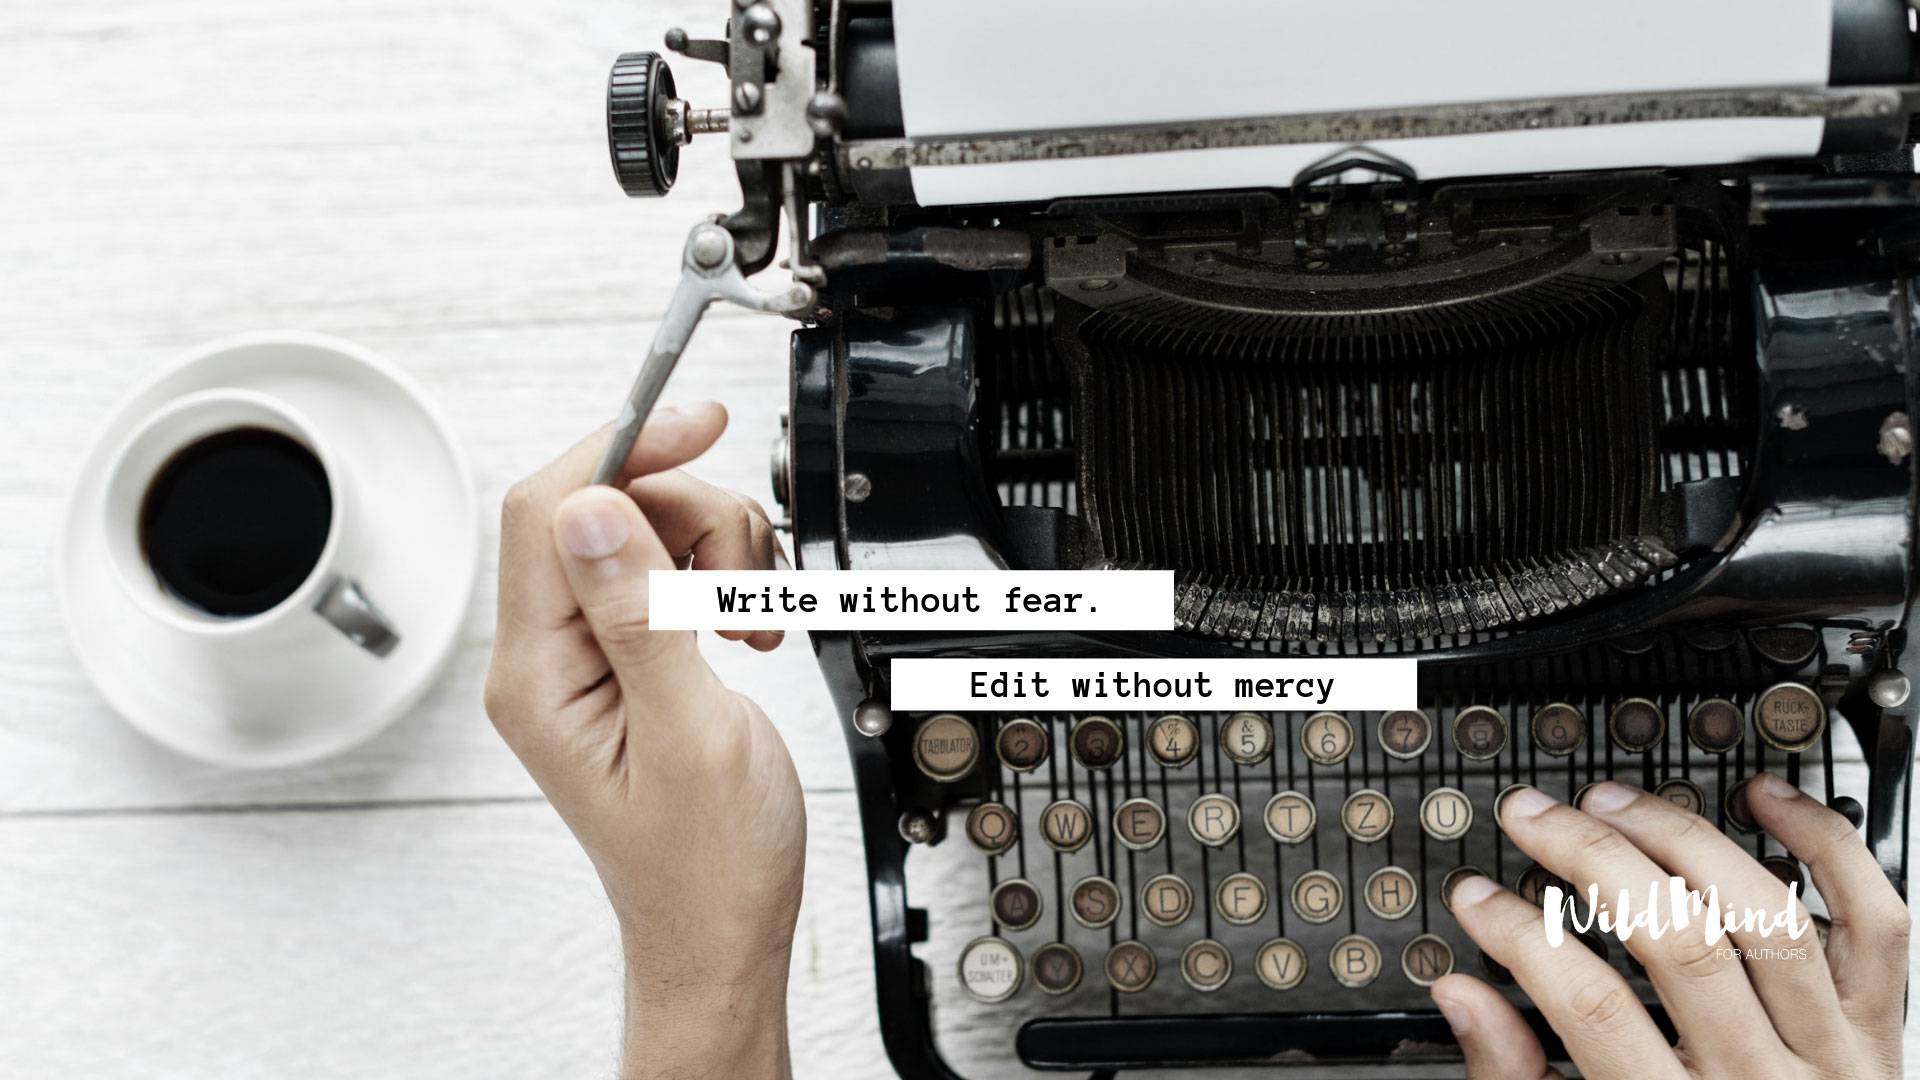 Write without fear wallpaper for writers